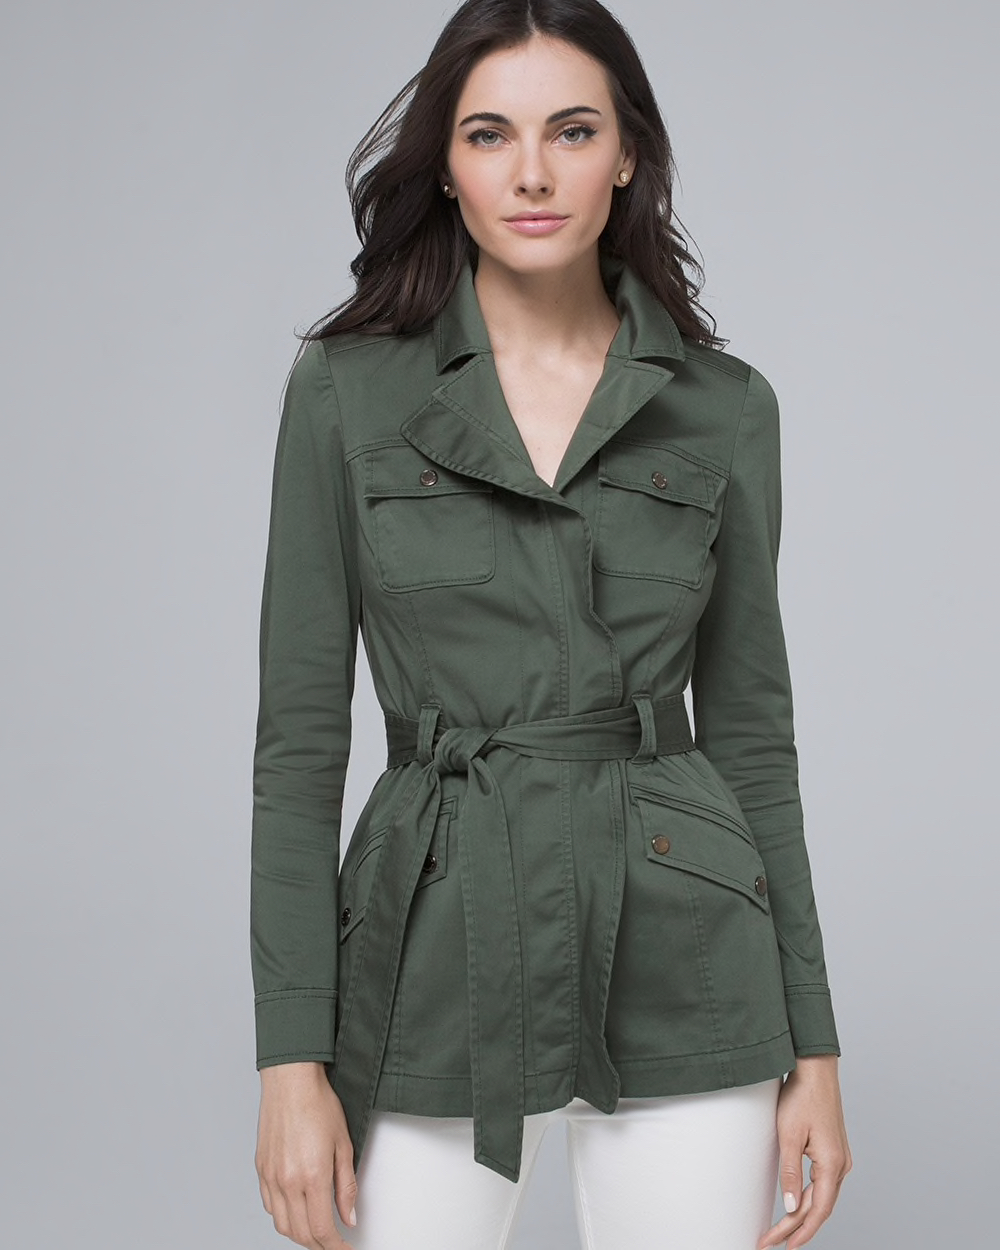 Capsule Wardrobe Jackets Safari Jacket With Removeable Belt